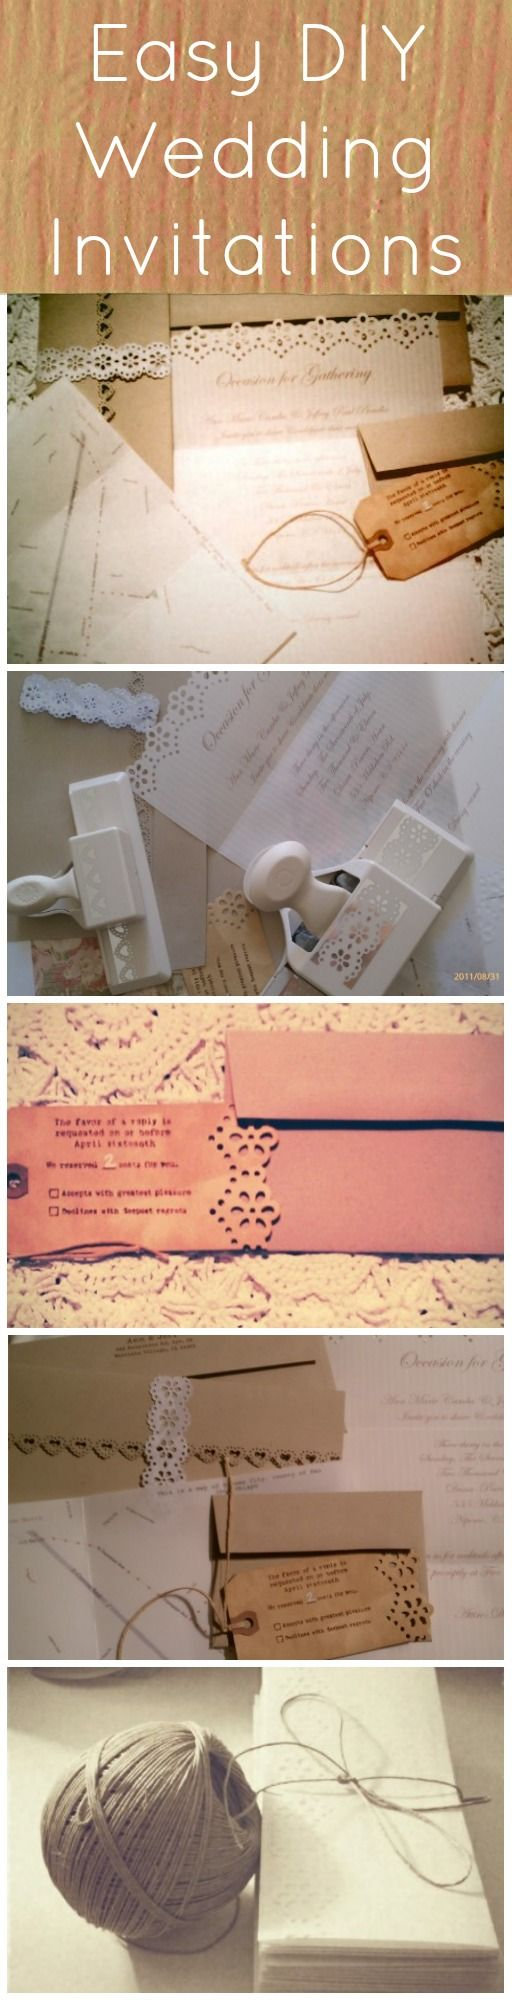 DIY Vintage Inspired Wedding Invitations 129 best